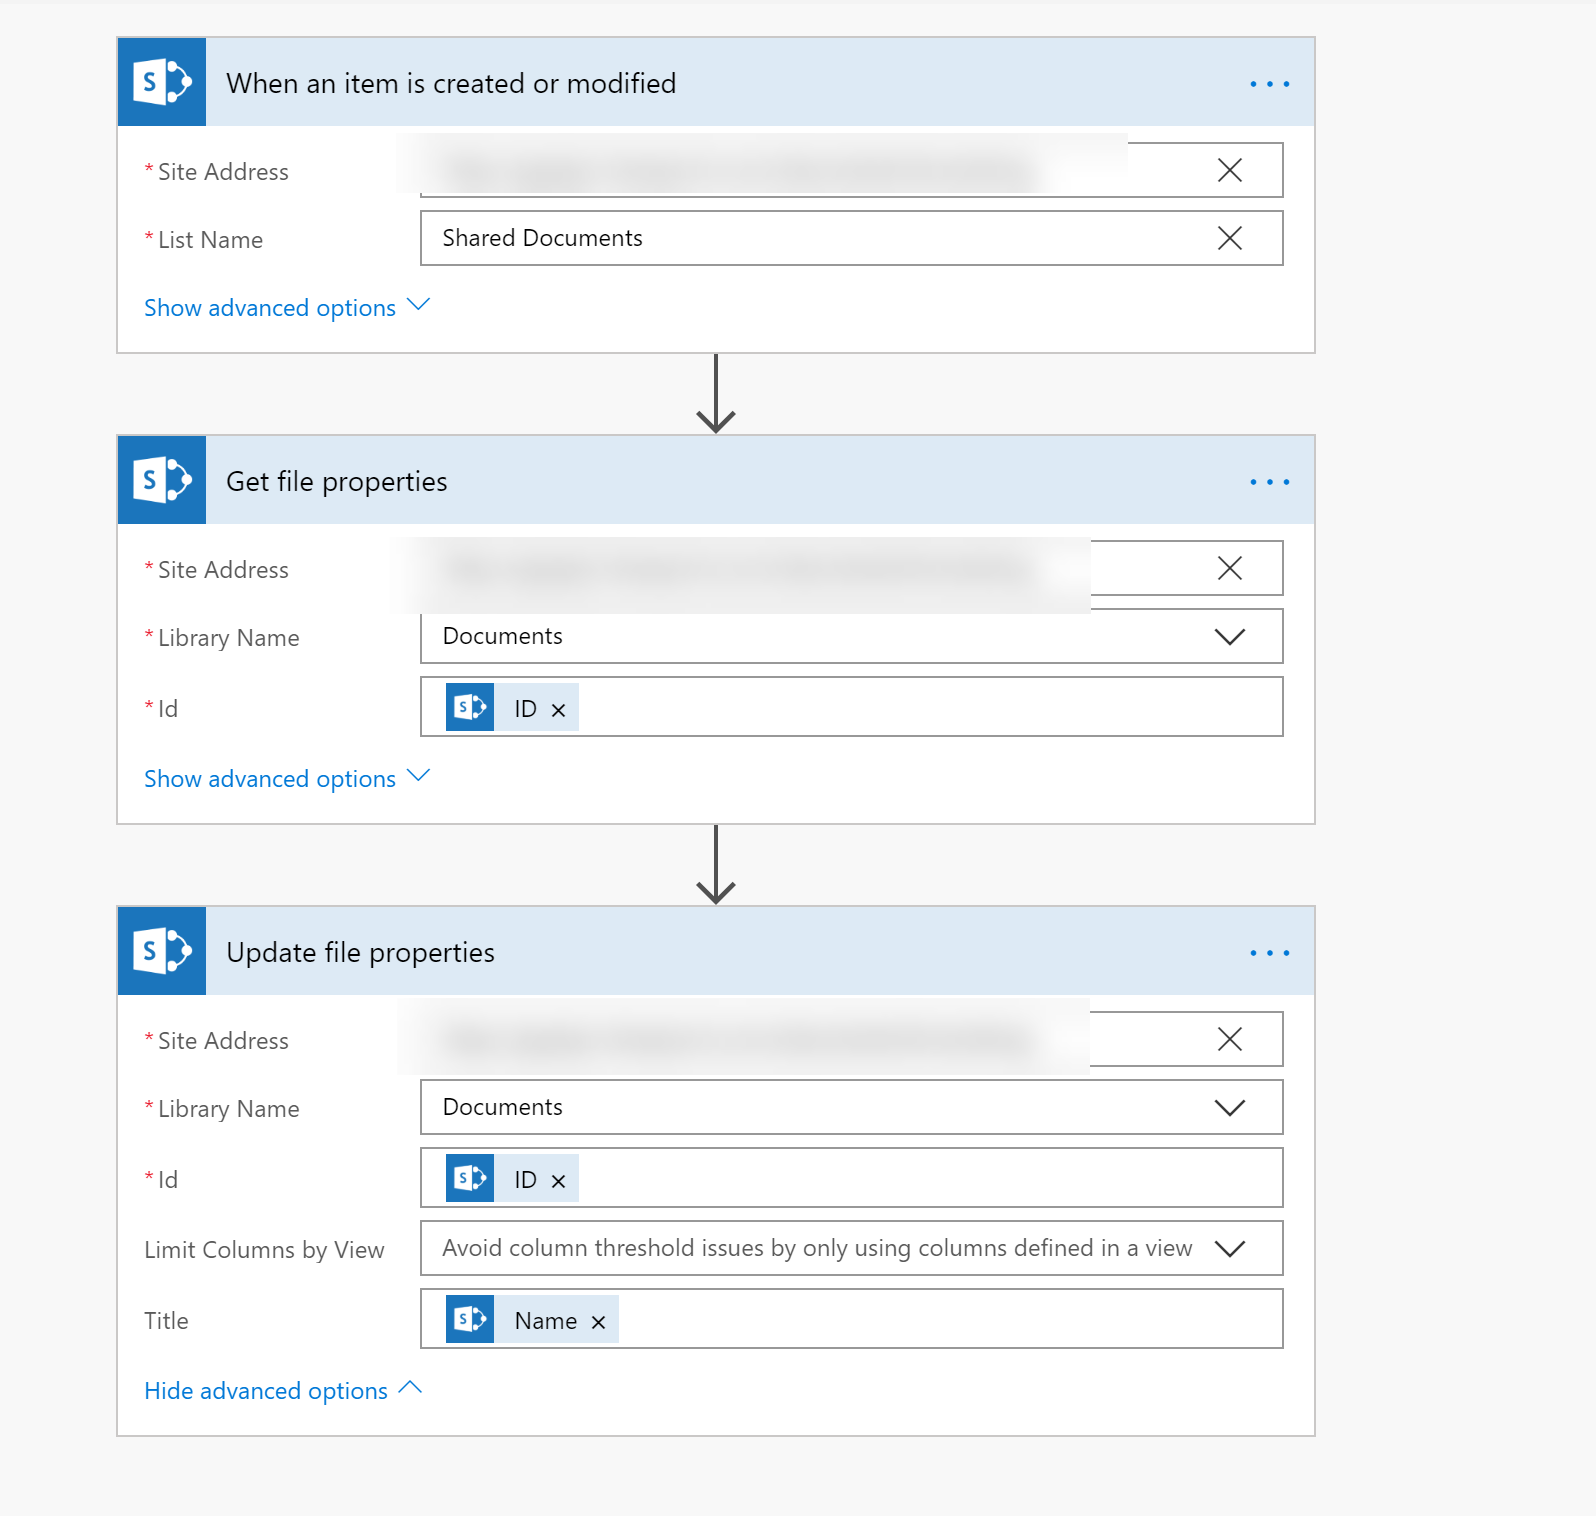 Use Microsoft Flow to Match SharePoint File Names to Titles